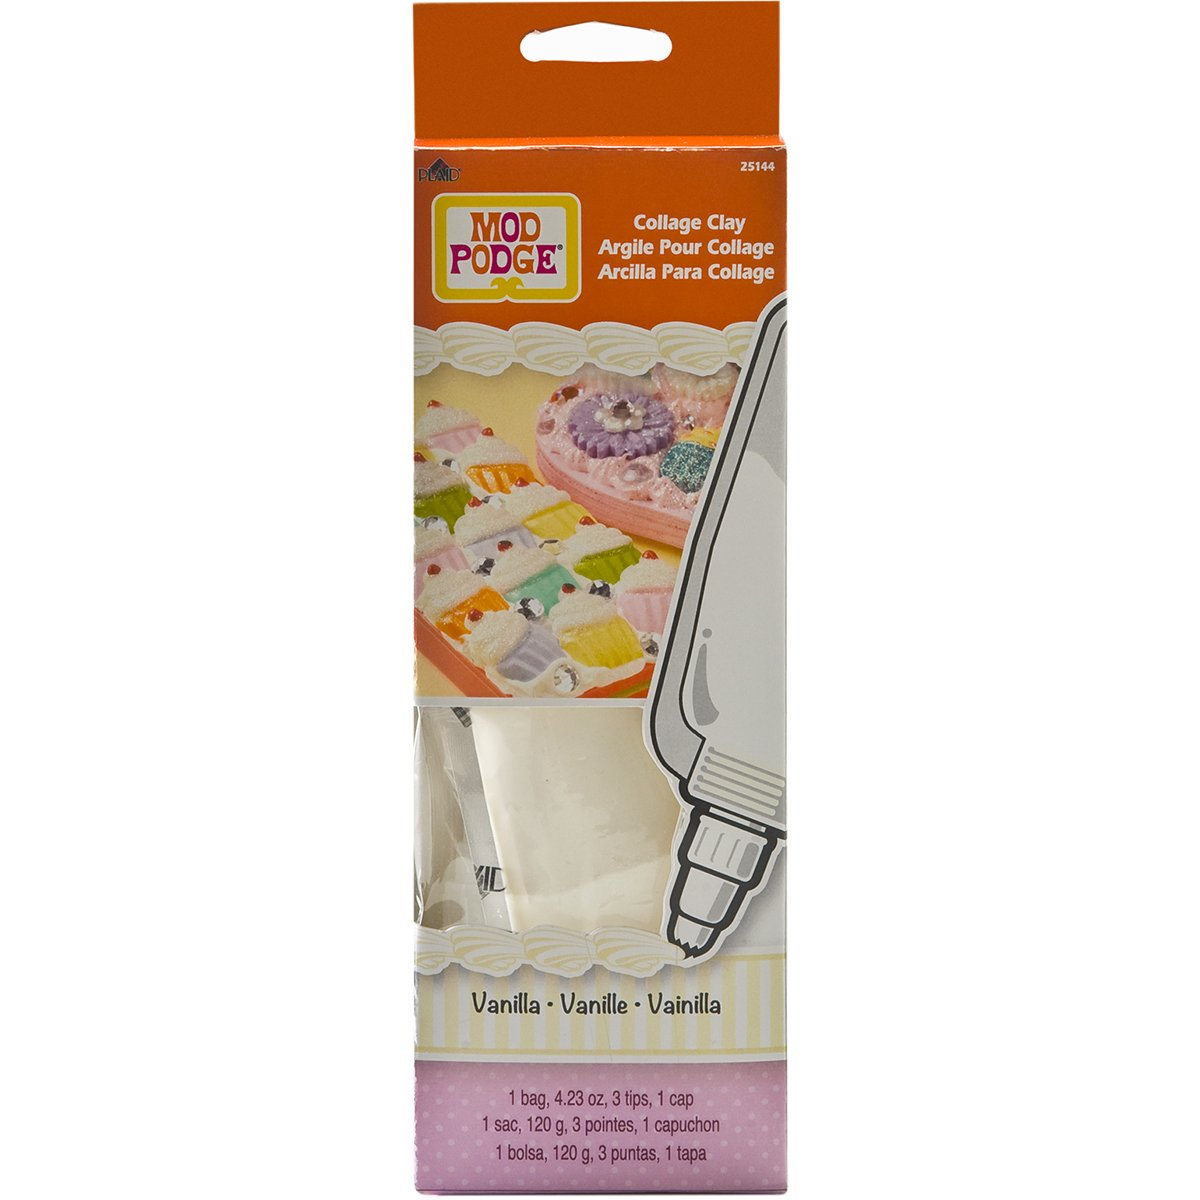 Mod Podge Collage Clay, 25144 Vanilla White 4.23Ounce Plaid Inc glue top coat craft